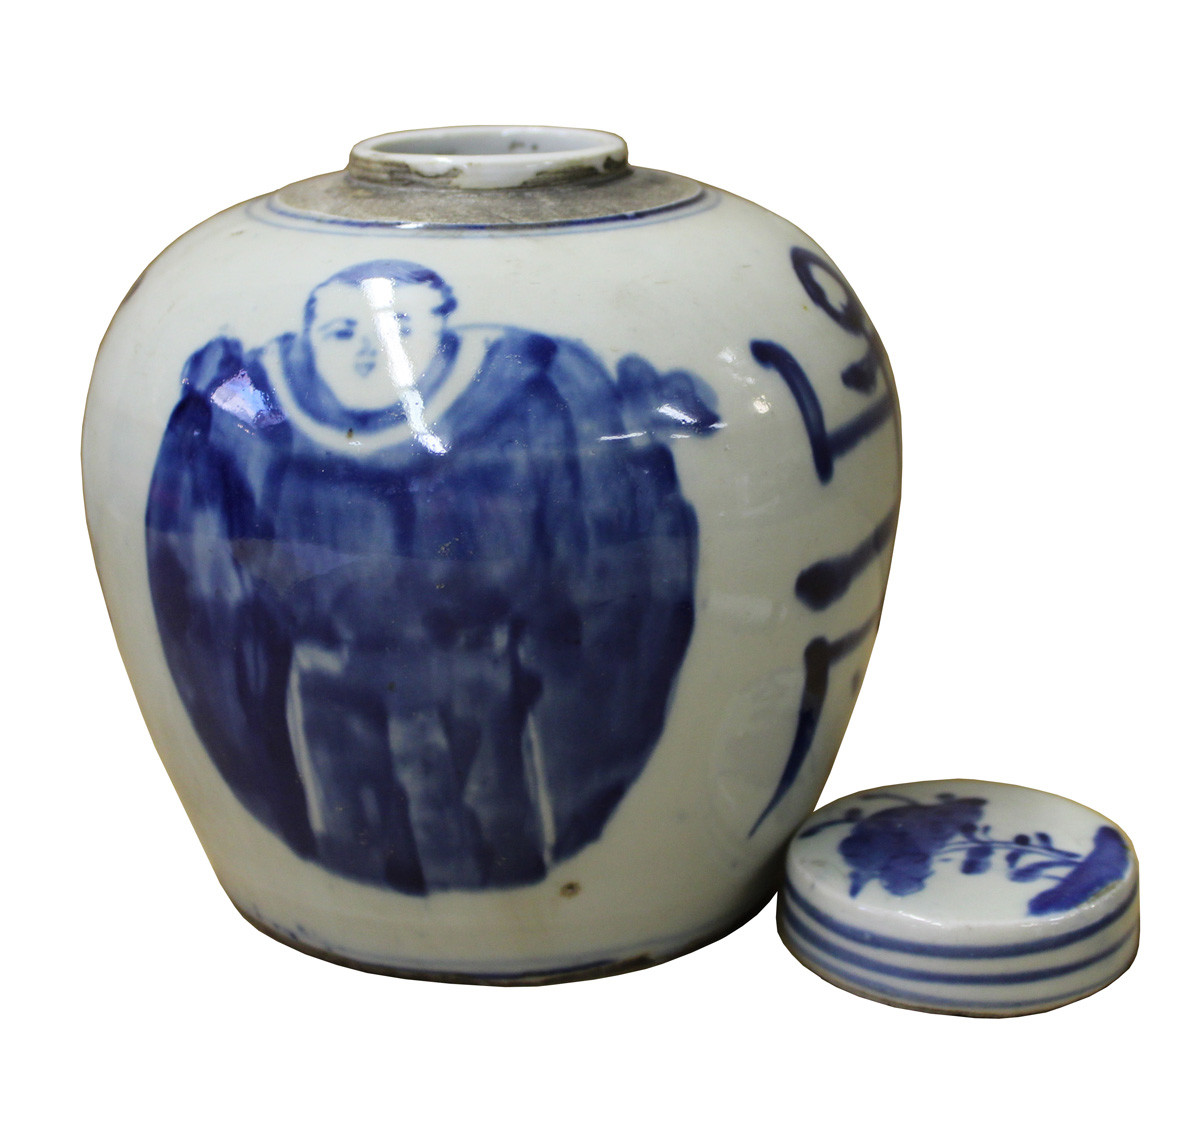 Blue White Ginger Jar Vases Of orient Living Chinese oriental Small Blue White Porcelain Ginger In Chinese oriental Small Blue White Porcelain Ginger Jar Cs2078ra 3